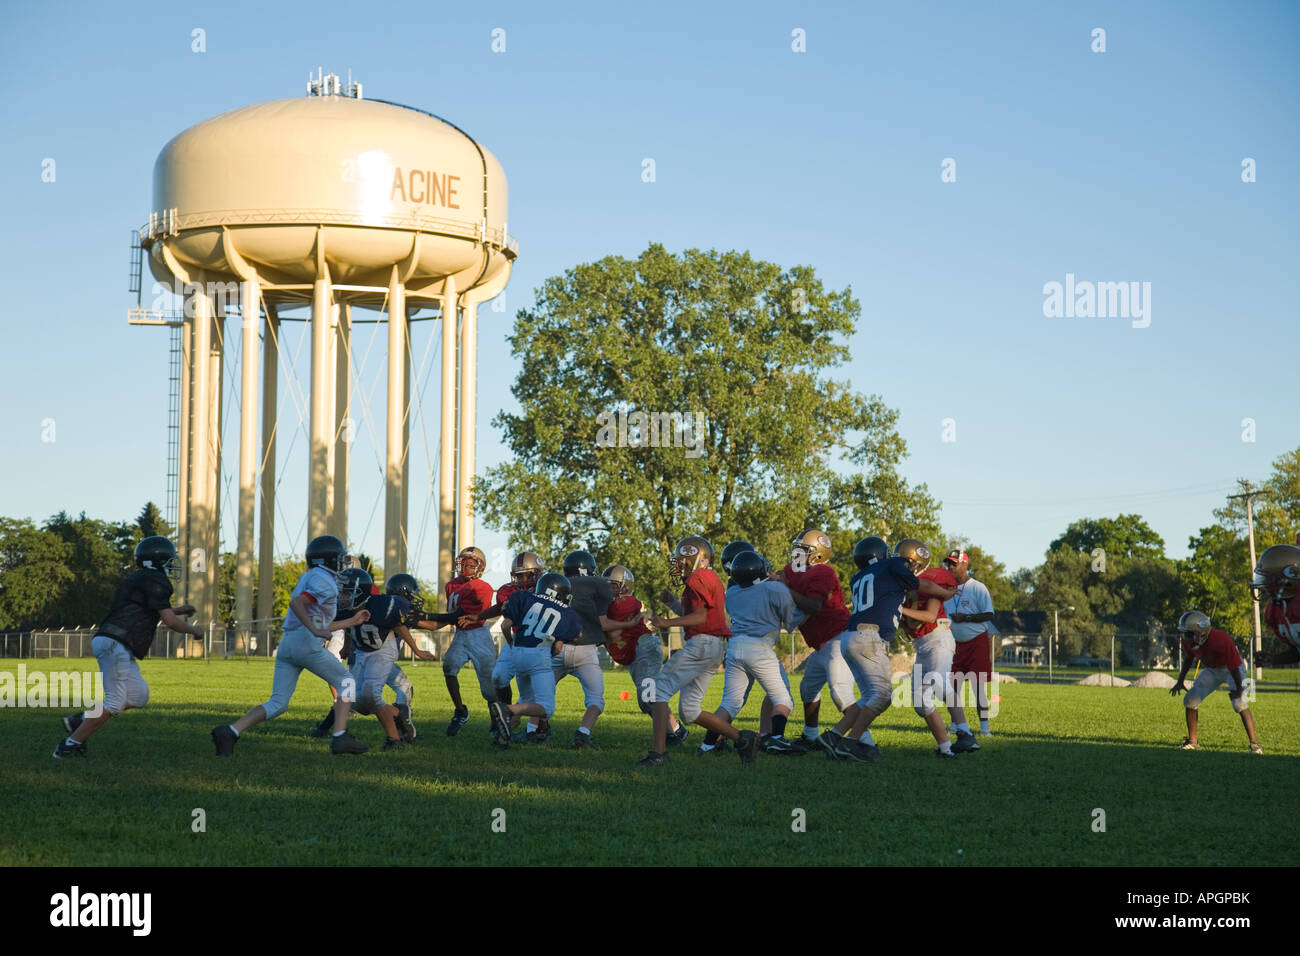 WISCONSIN Racine Junior high boys playing football game in field water tower town name painted on side - Stock Image